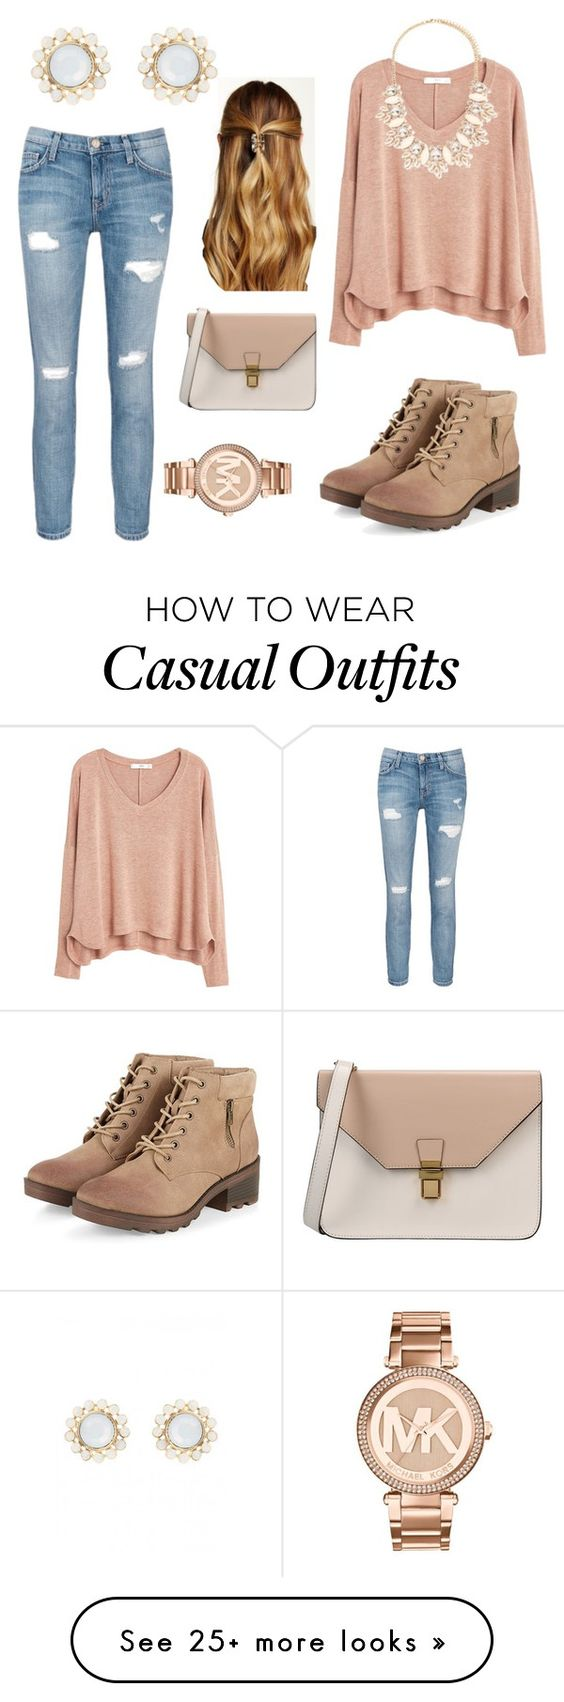 """""""Casual Beauty"""" by amanda-013 on Polyvore featuring MANGO, Forever 21, Michael Kors, Natasha Accessories, 8 and Current/Elliott"""